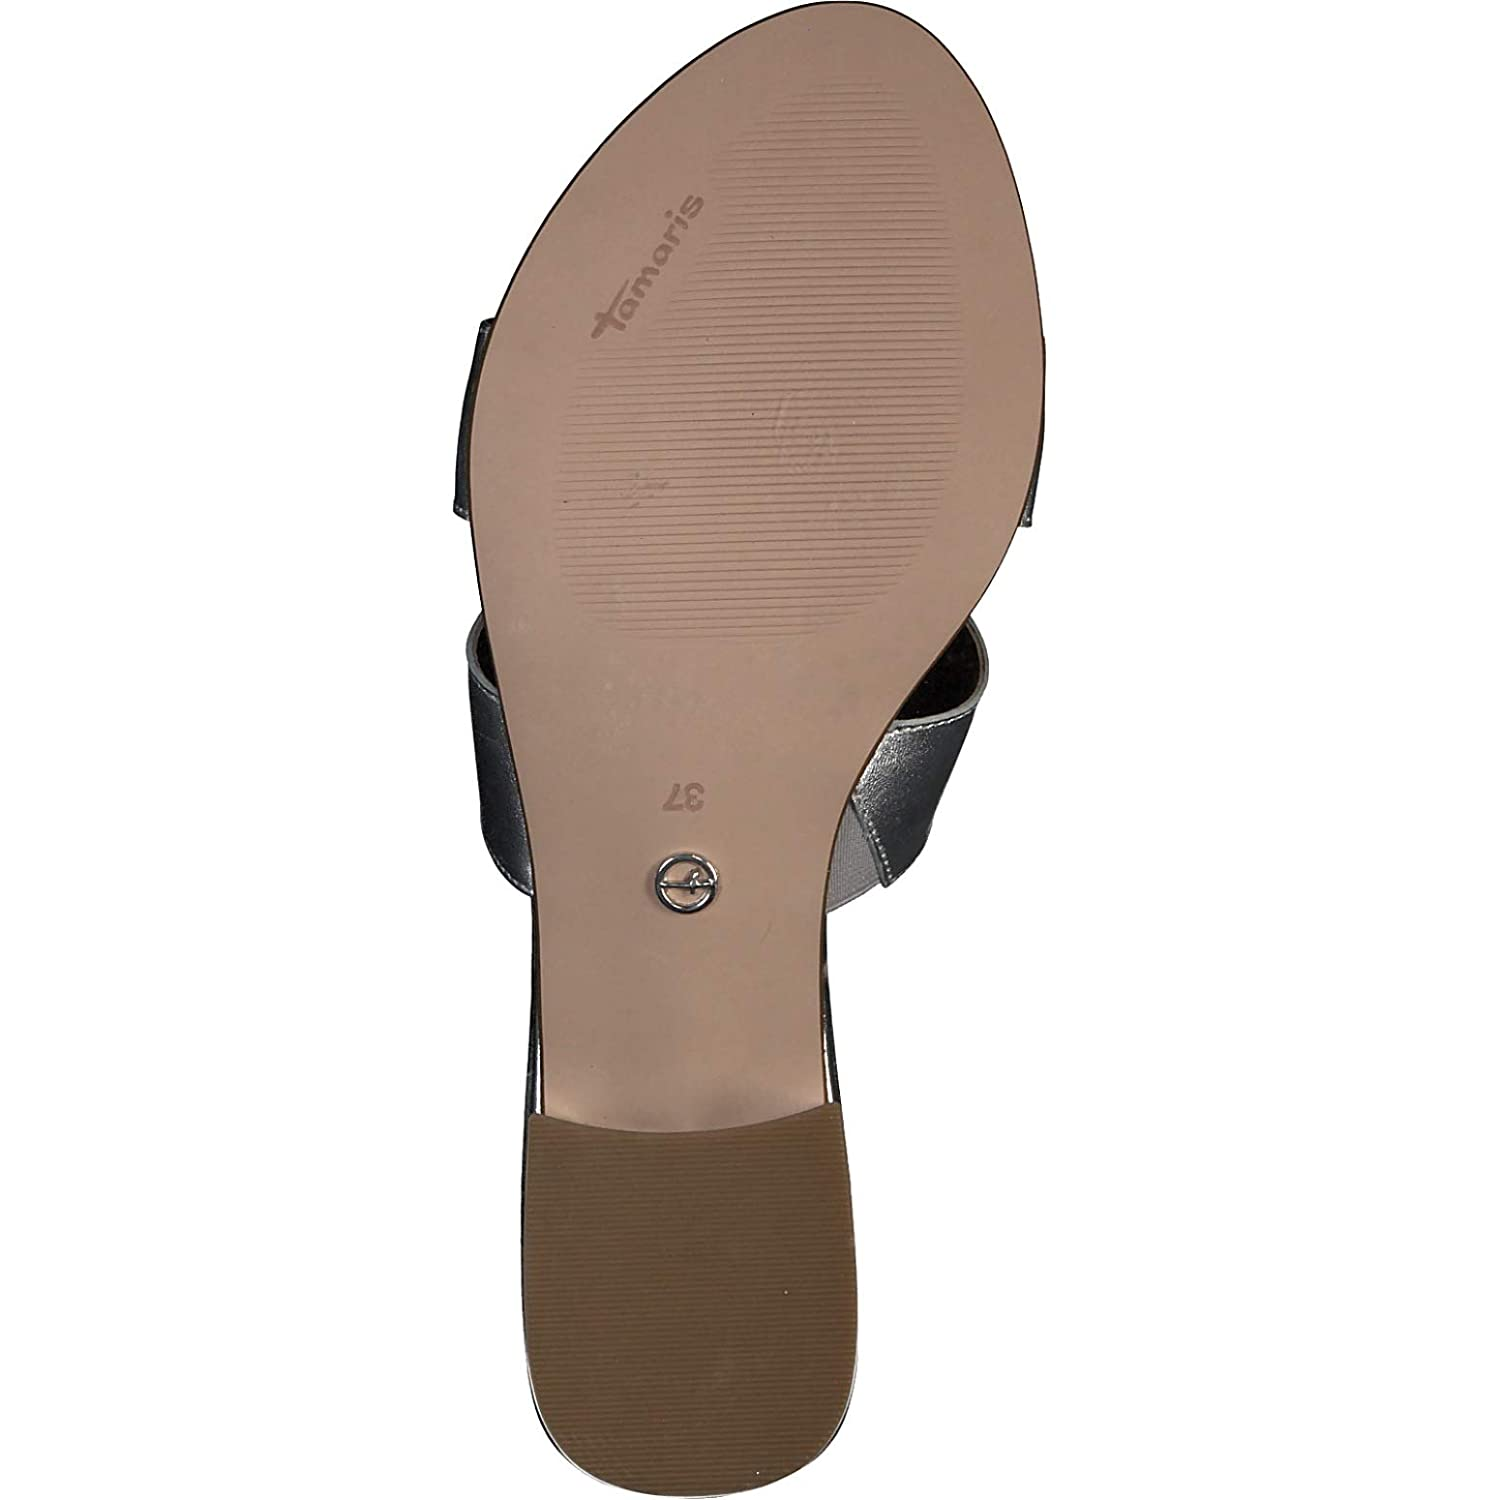 Tamaris 1 1 27123 22 Women Mules,Mules,Slippers,Slides,Touch IT